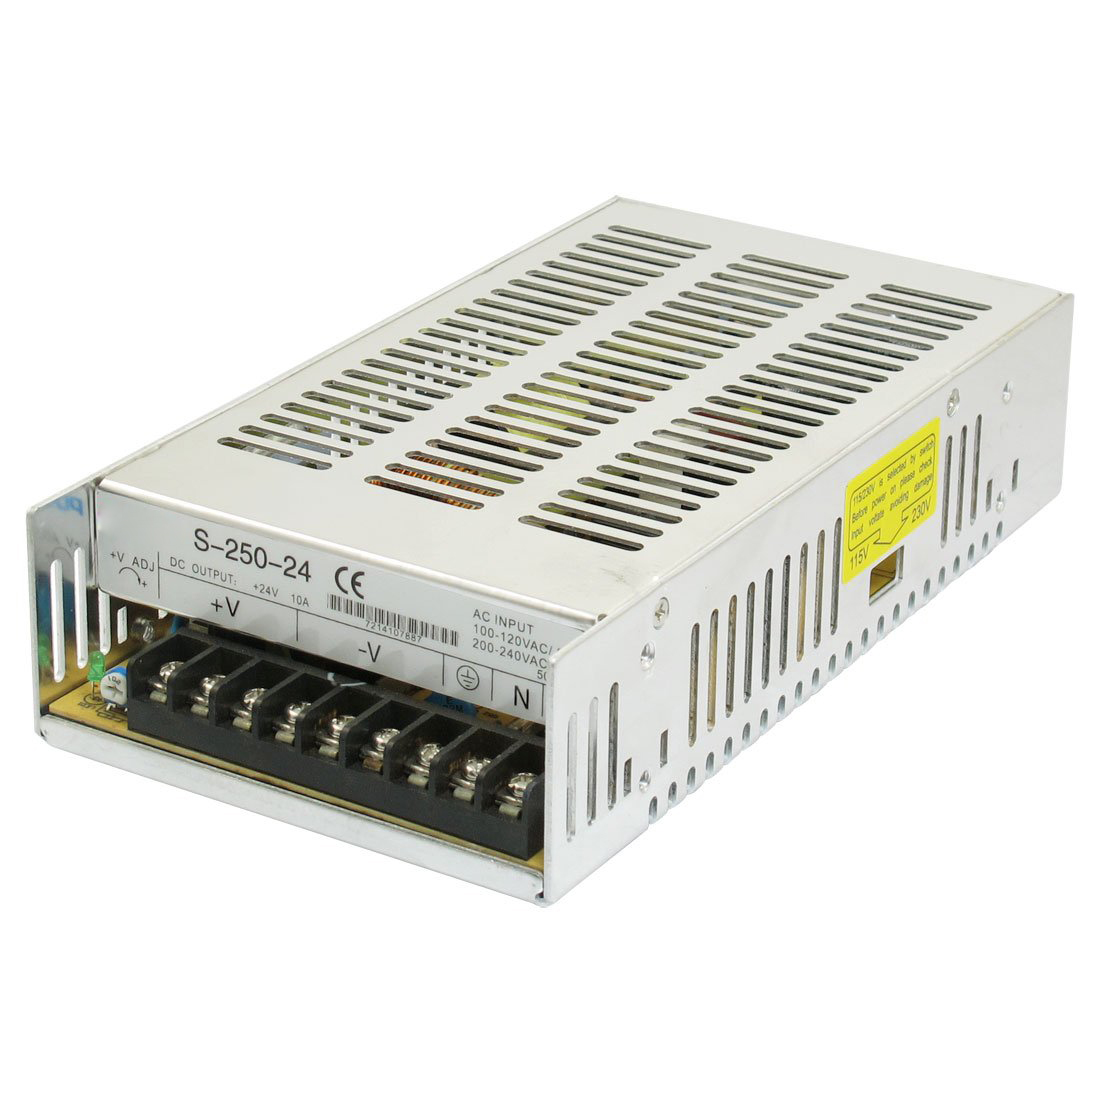 все цены на Three Output Switching Power Supply DC 24V 10A 250W for LED Light онлайн